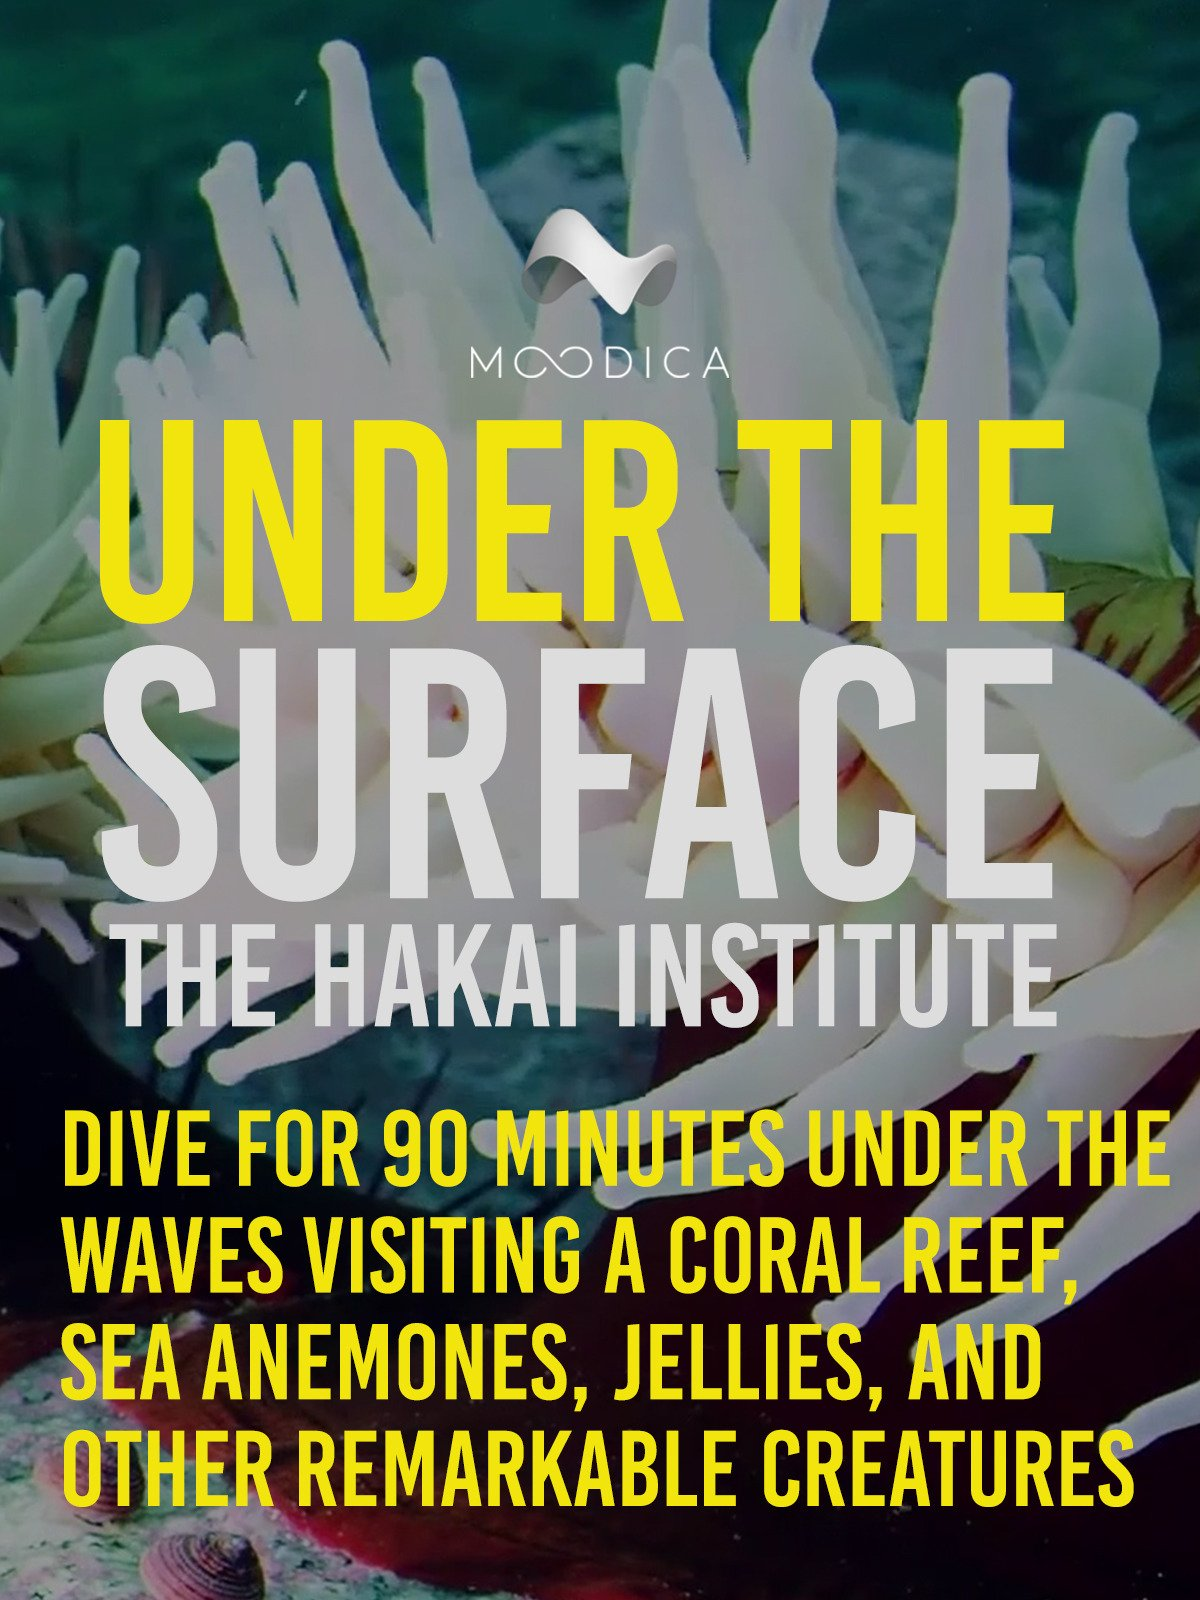 Under The Surface: The Hakai Institute: Dive For 90 Minutes Under the Waves Visiting A Coral Reef, Sea Anemones, Jellies, and Other Remarkable Creatures